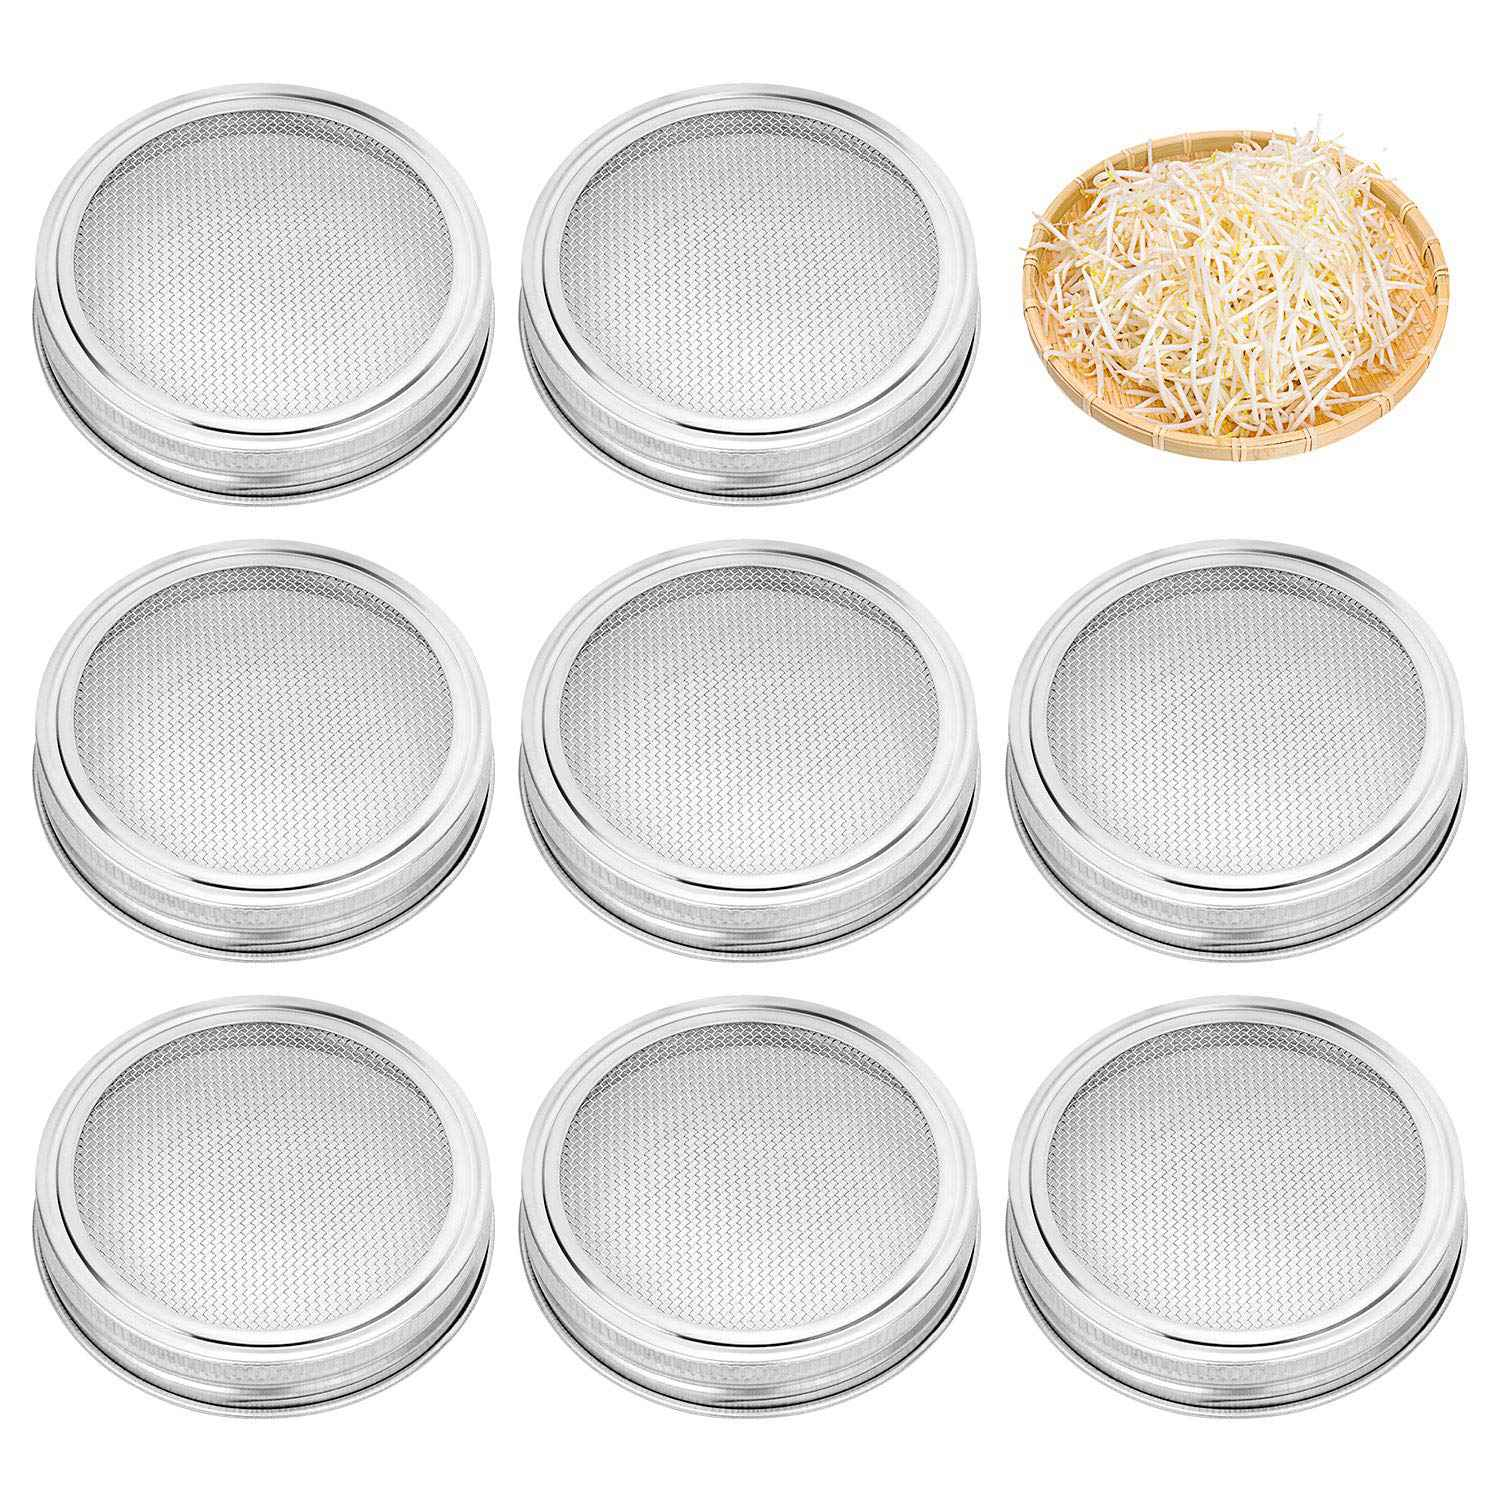 8 Pack Stainless Steel Sprouting Jar Lid Kit For Wide Mouth Mason Jars,Strainer Screen For Canning Jars And Seed Sprouting8 Pack Stainless Steel Sprouting Jar Lid Kit For Wide Mouth Mason Jars,Strainer Screen For Canning Jars And Seed Sprouting